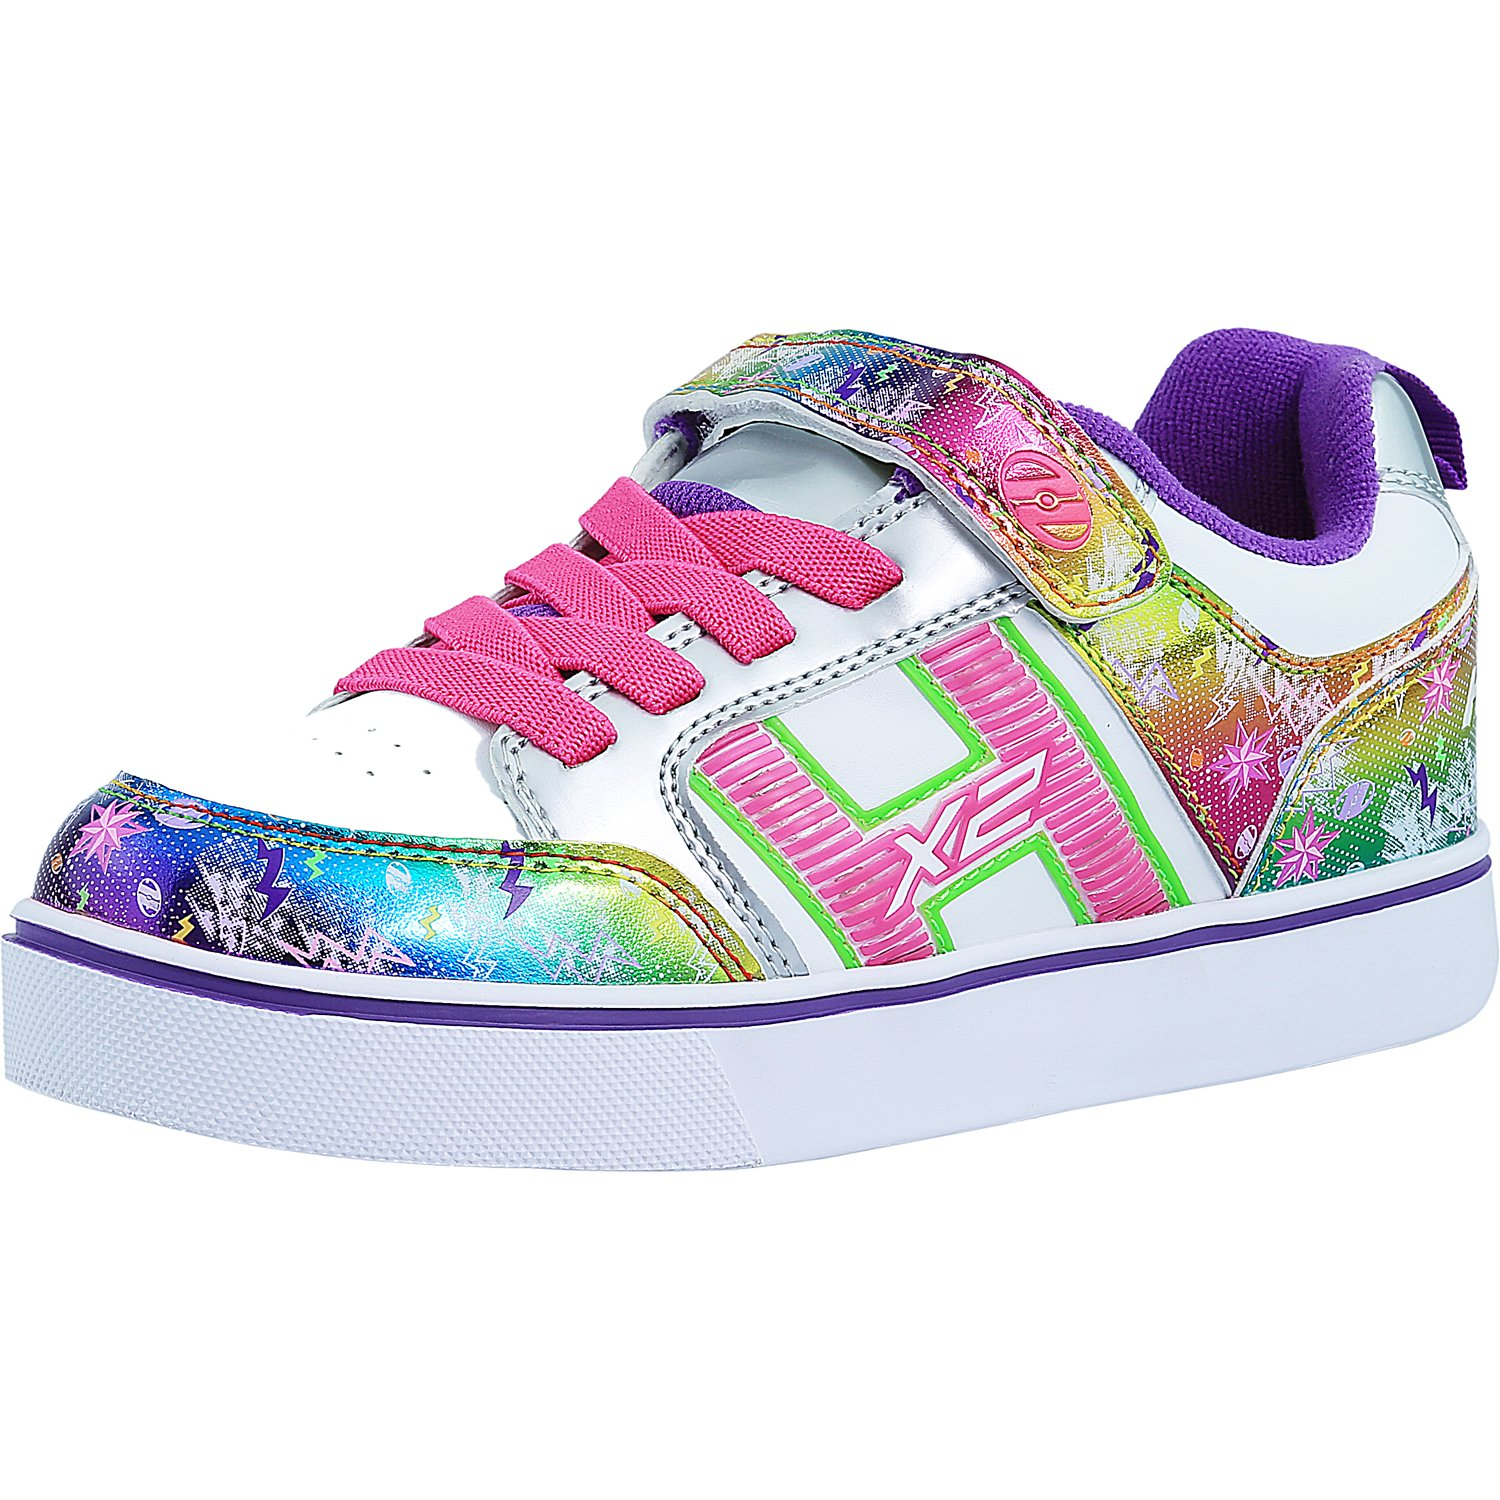 Heelys Bolt Plus X2 White / Silver / Rainbow Ankle-High Fashion Sneaker - 3M